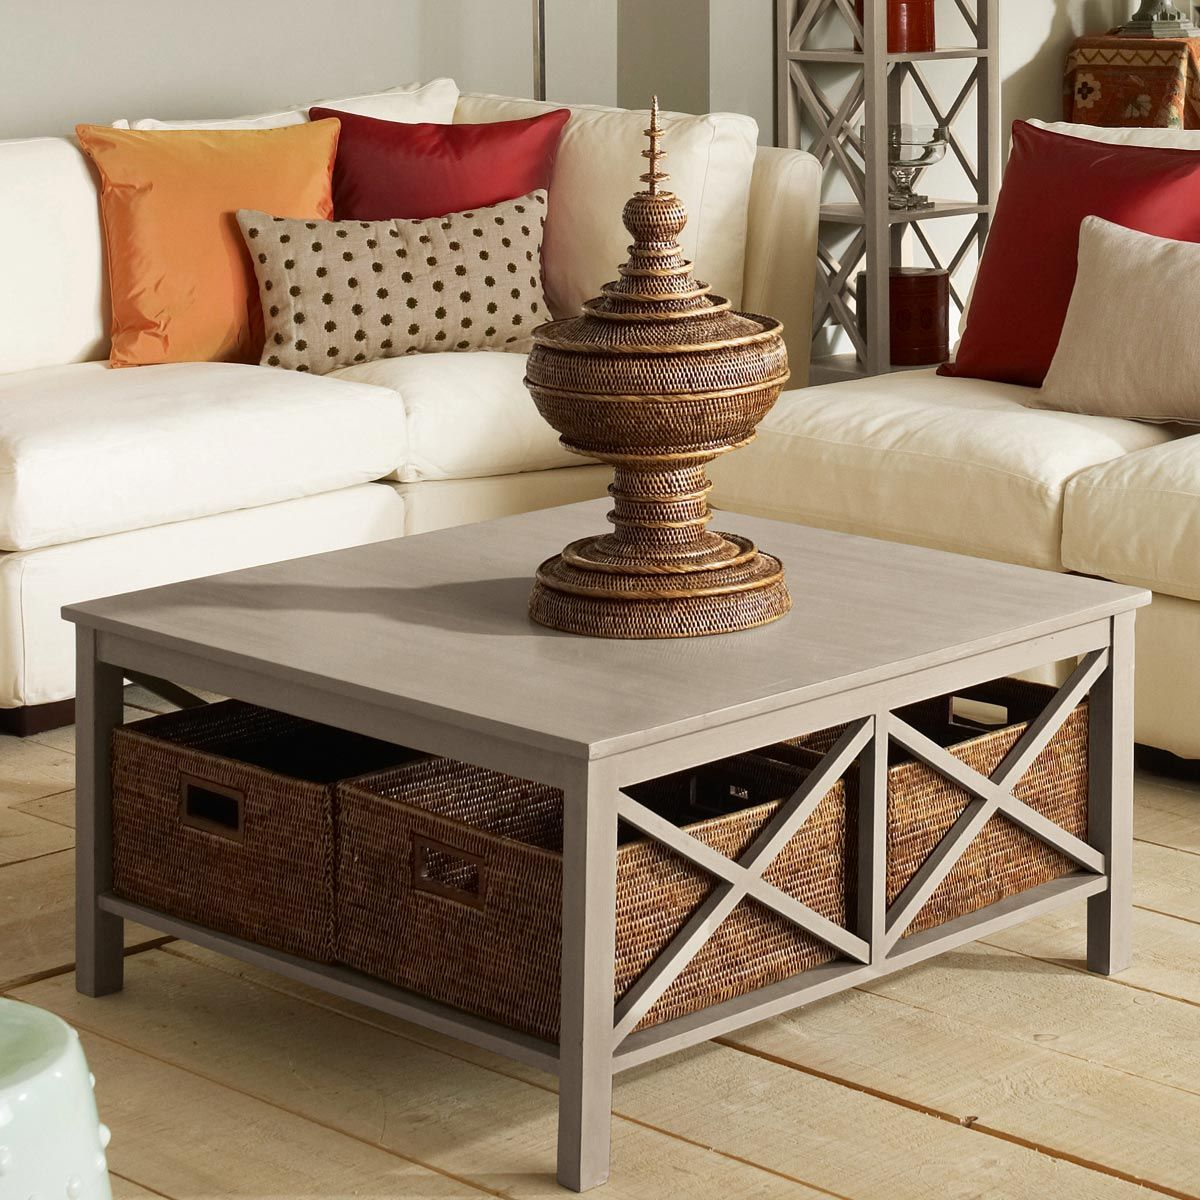 Small Square Coffee Table With Storage Saltire Large Square Coffee Table With Storage More